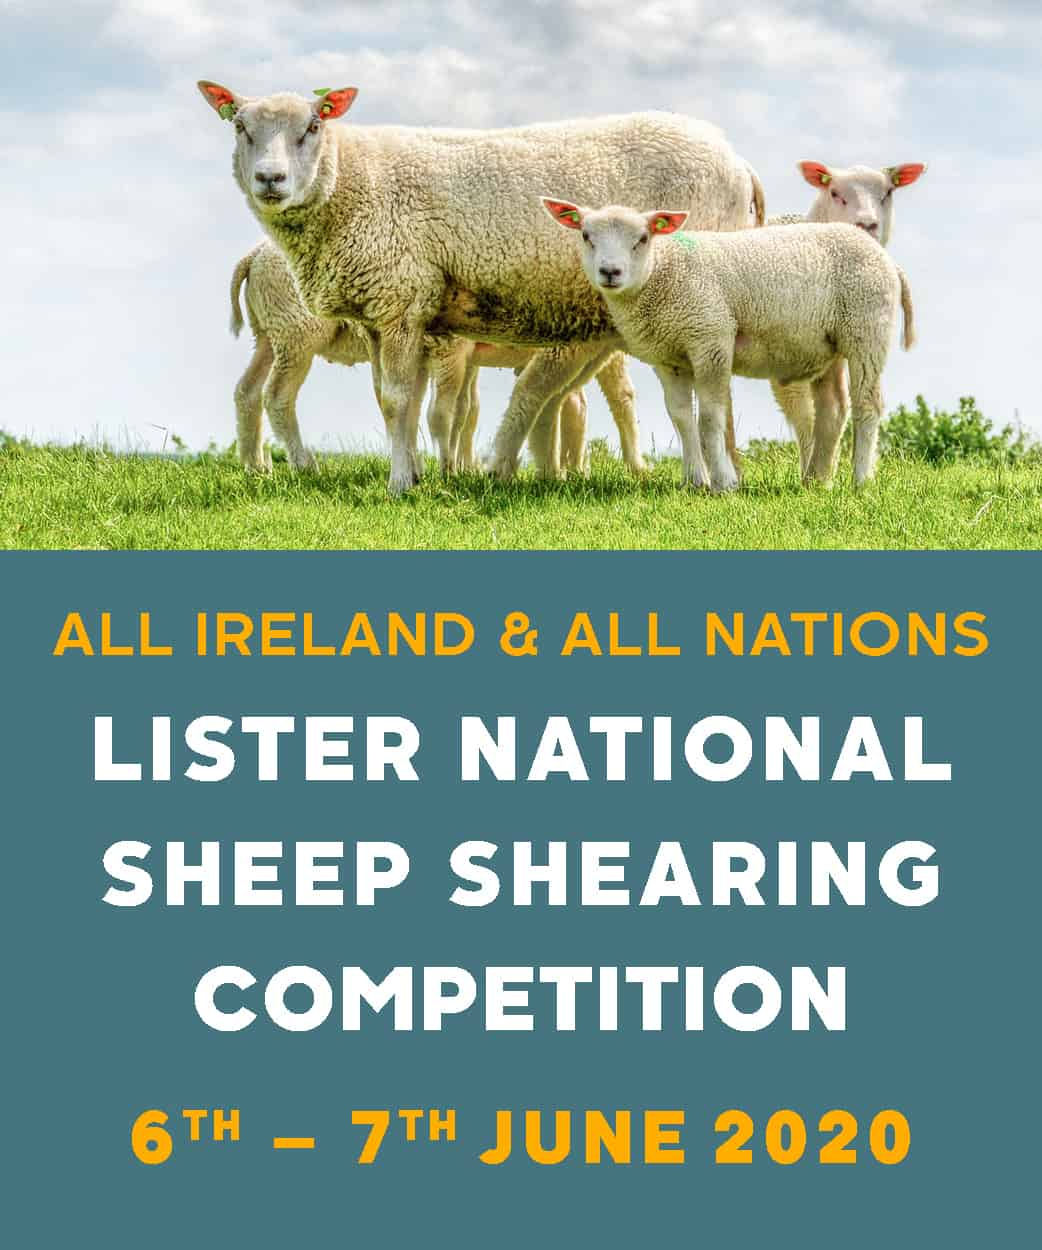 Lister National Sheep Shearing Championships